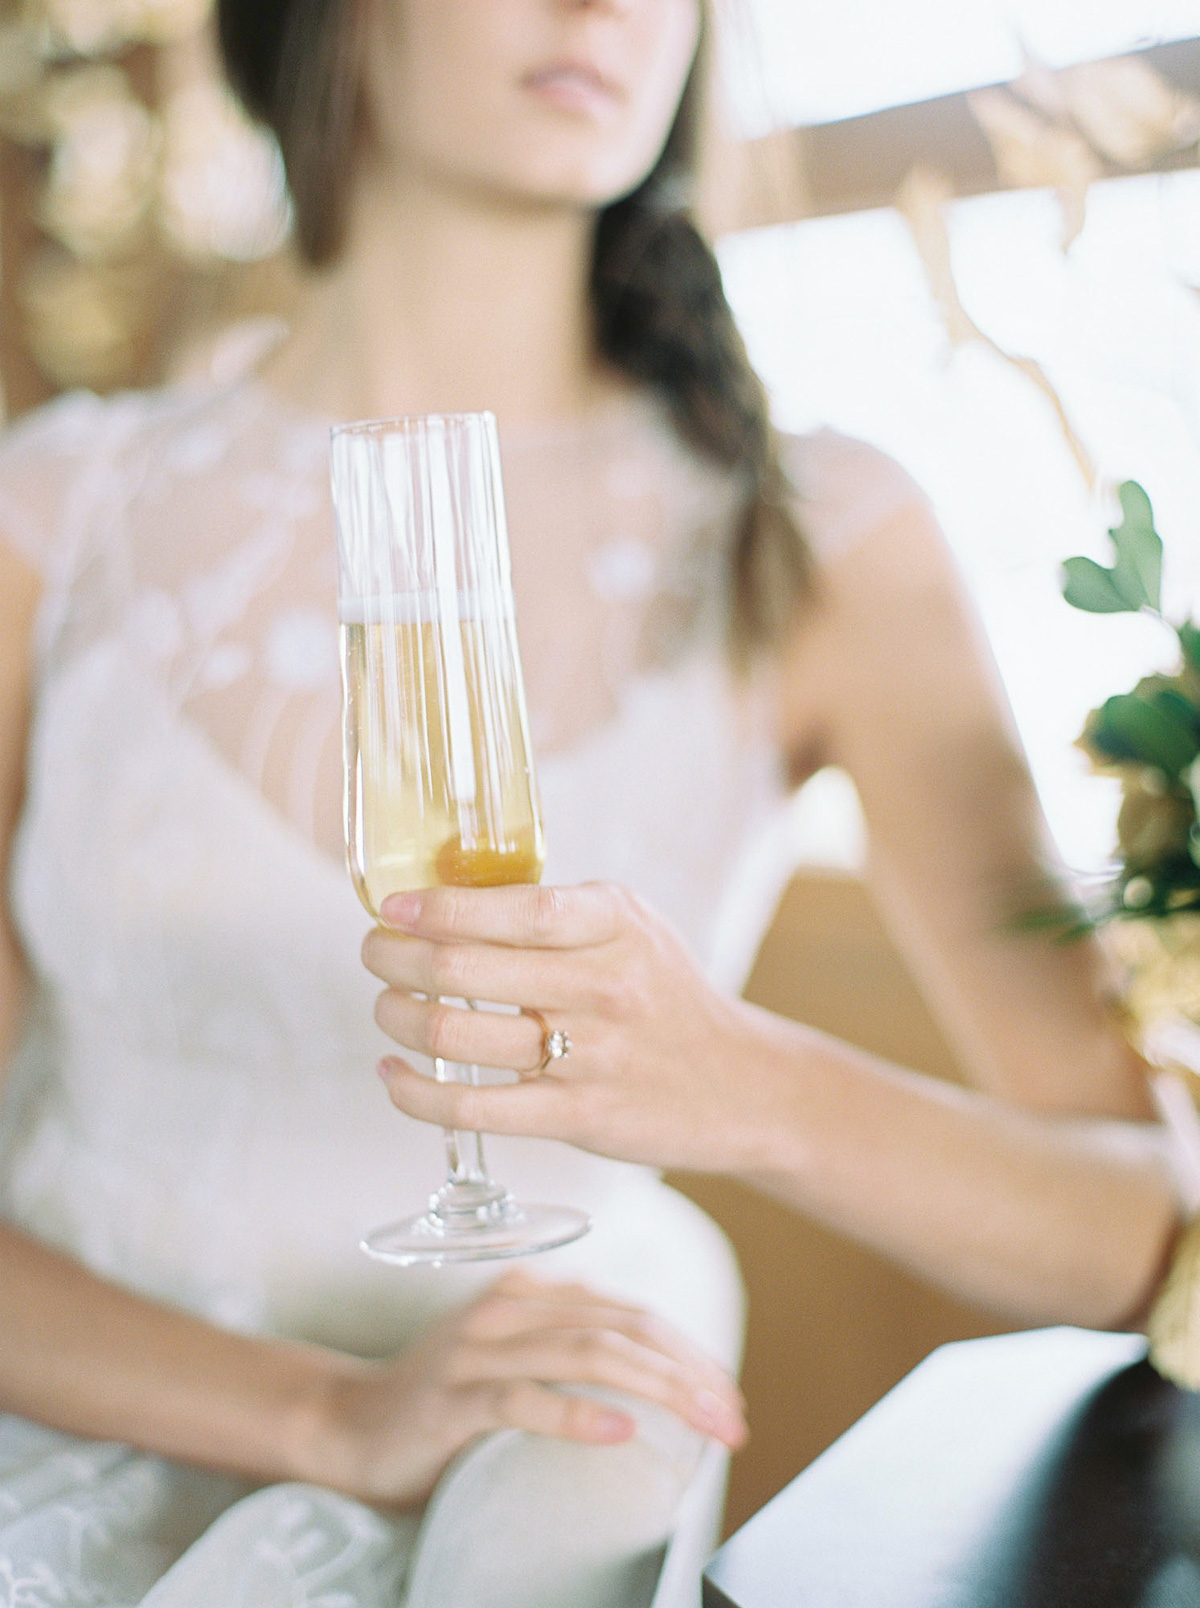 will-reid-photo-vineyard-bride-swish-list-kurtz-orchards-market-niagara-on-the-lake-wedding-editorial-36.jpg